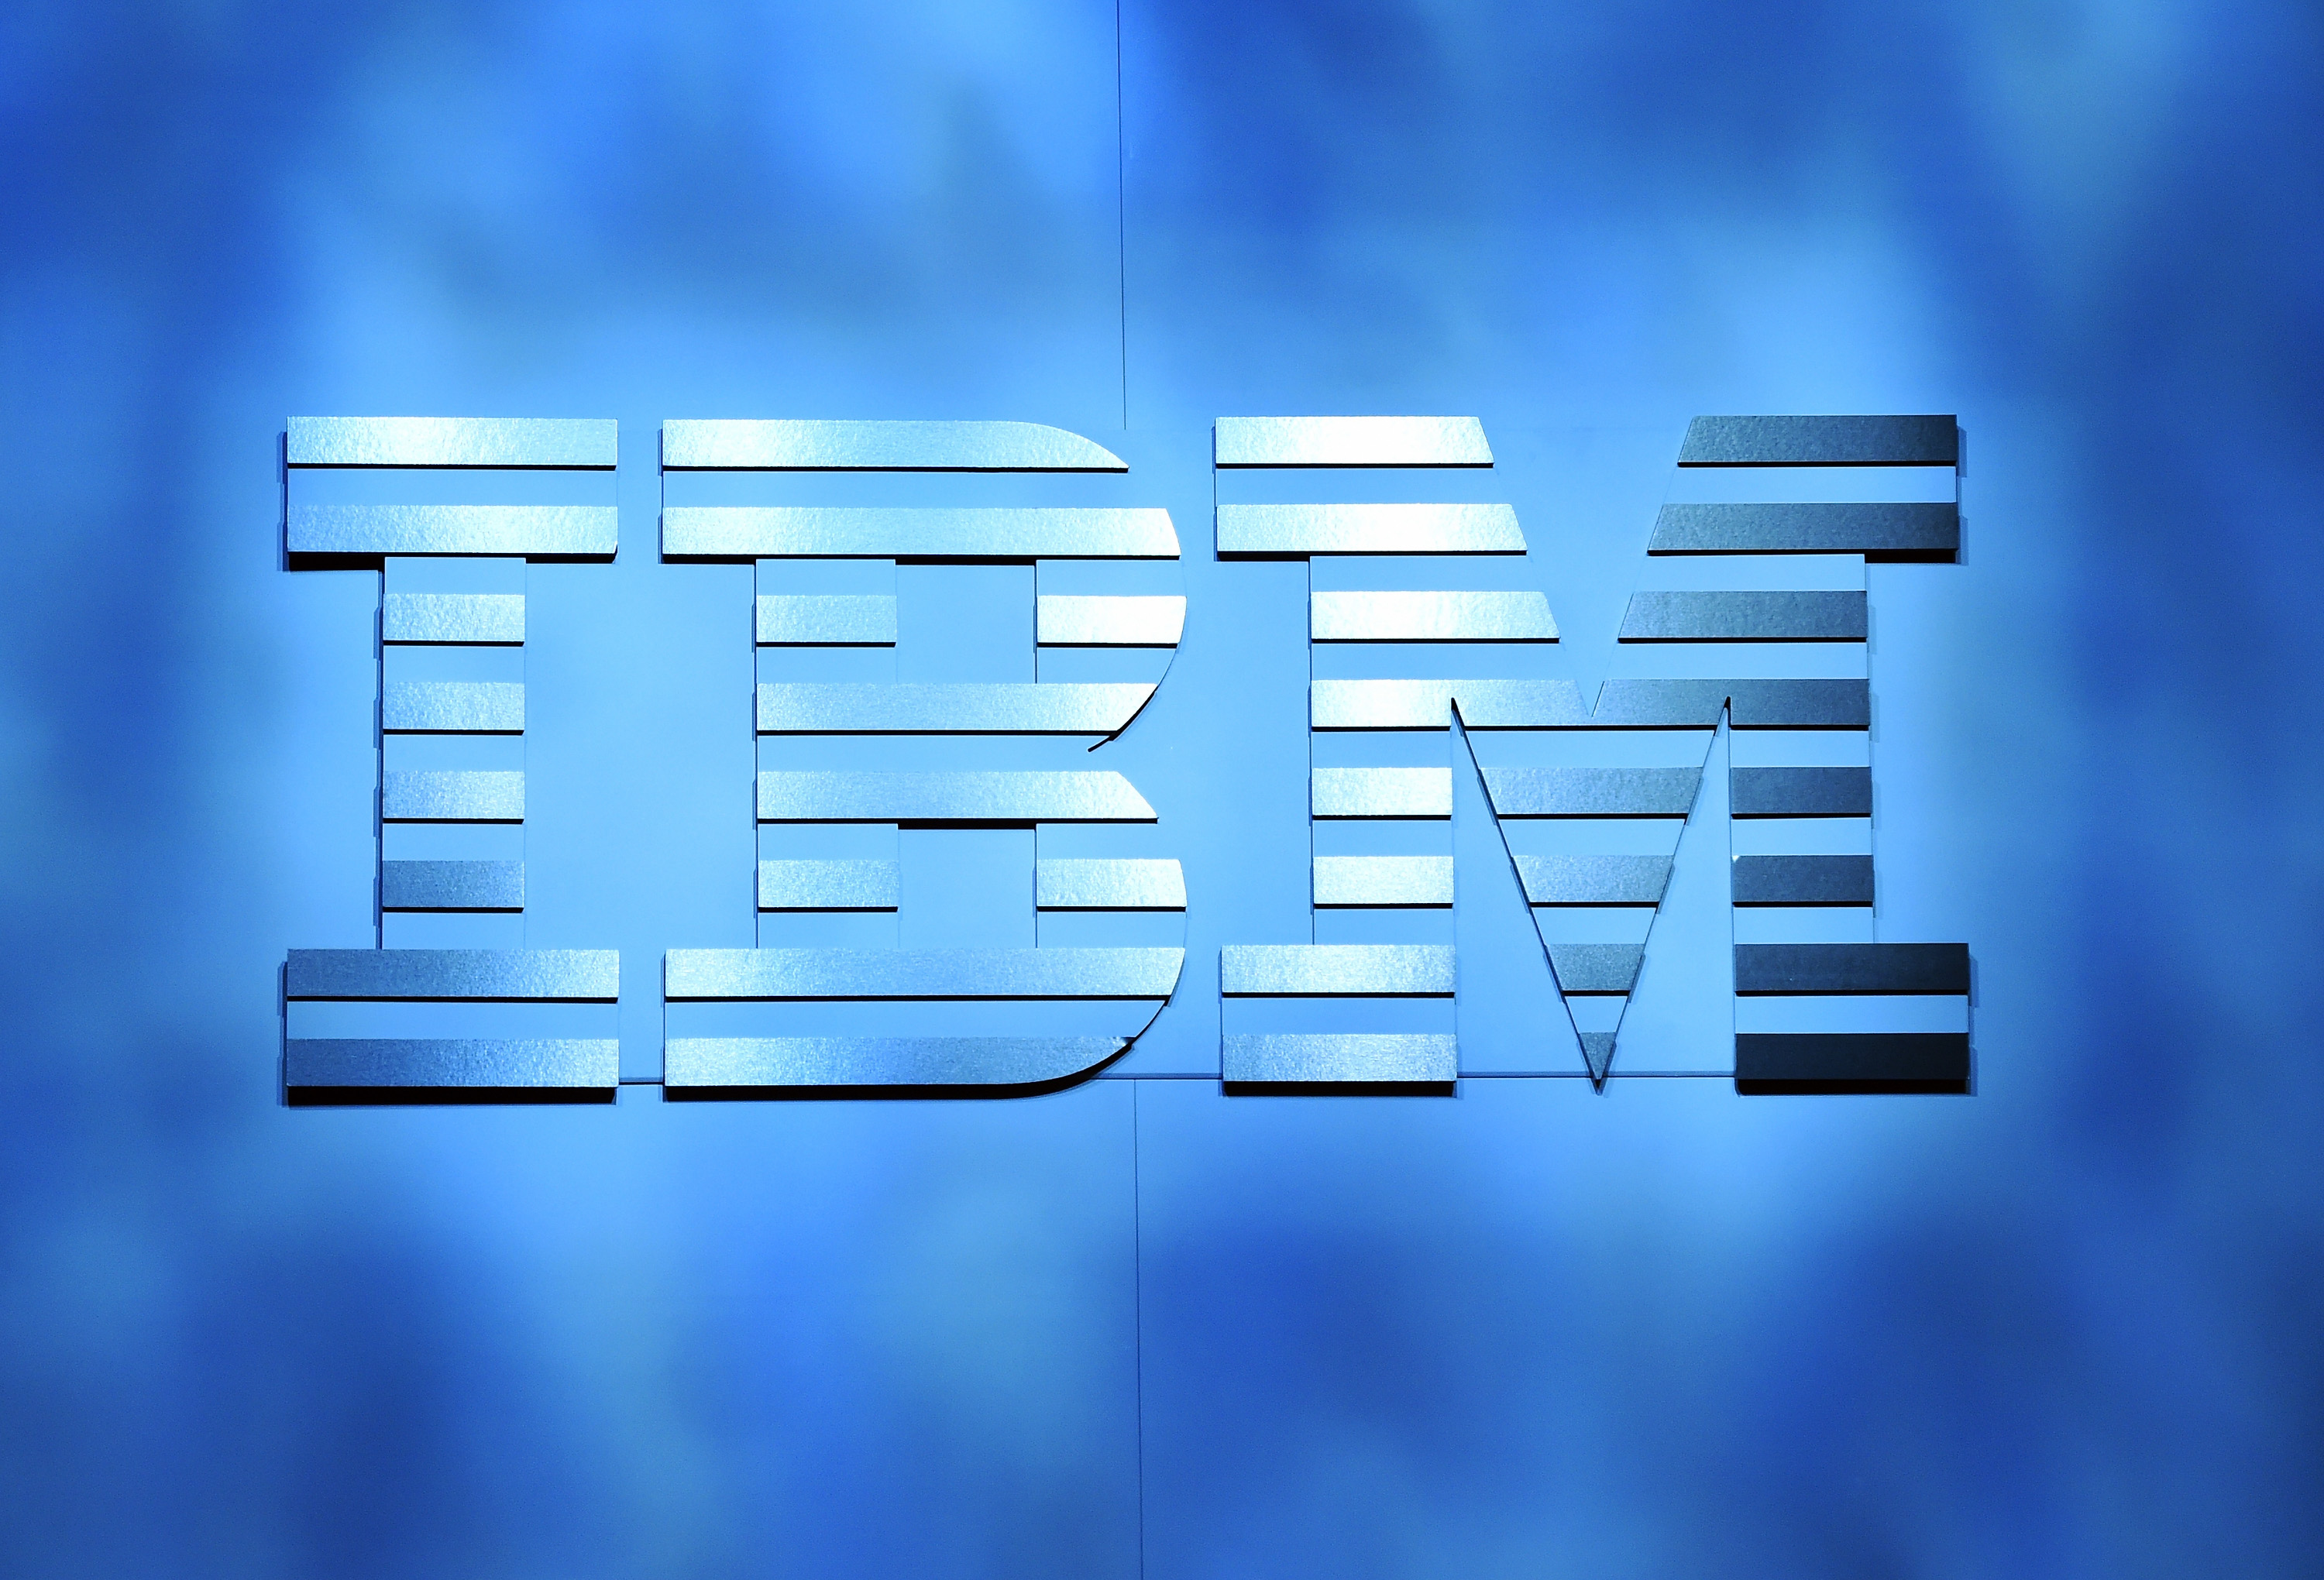 IBM Goes On The Offensive While Revenue Declines | Fortune